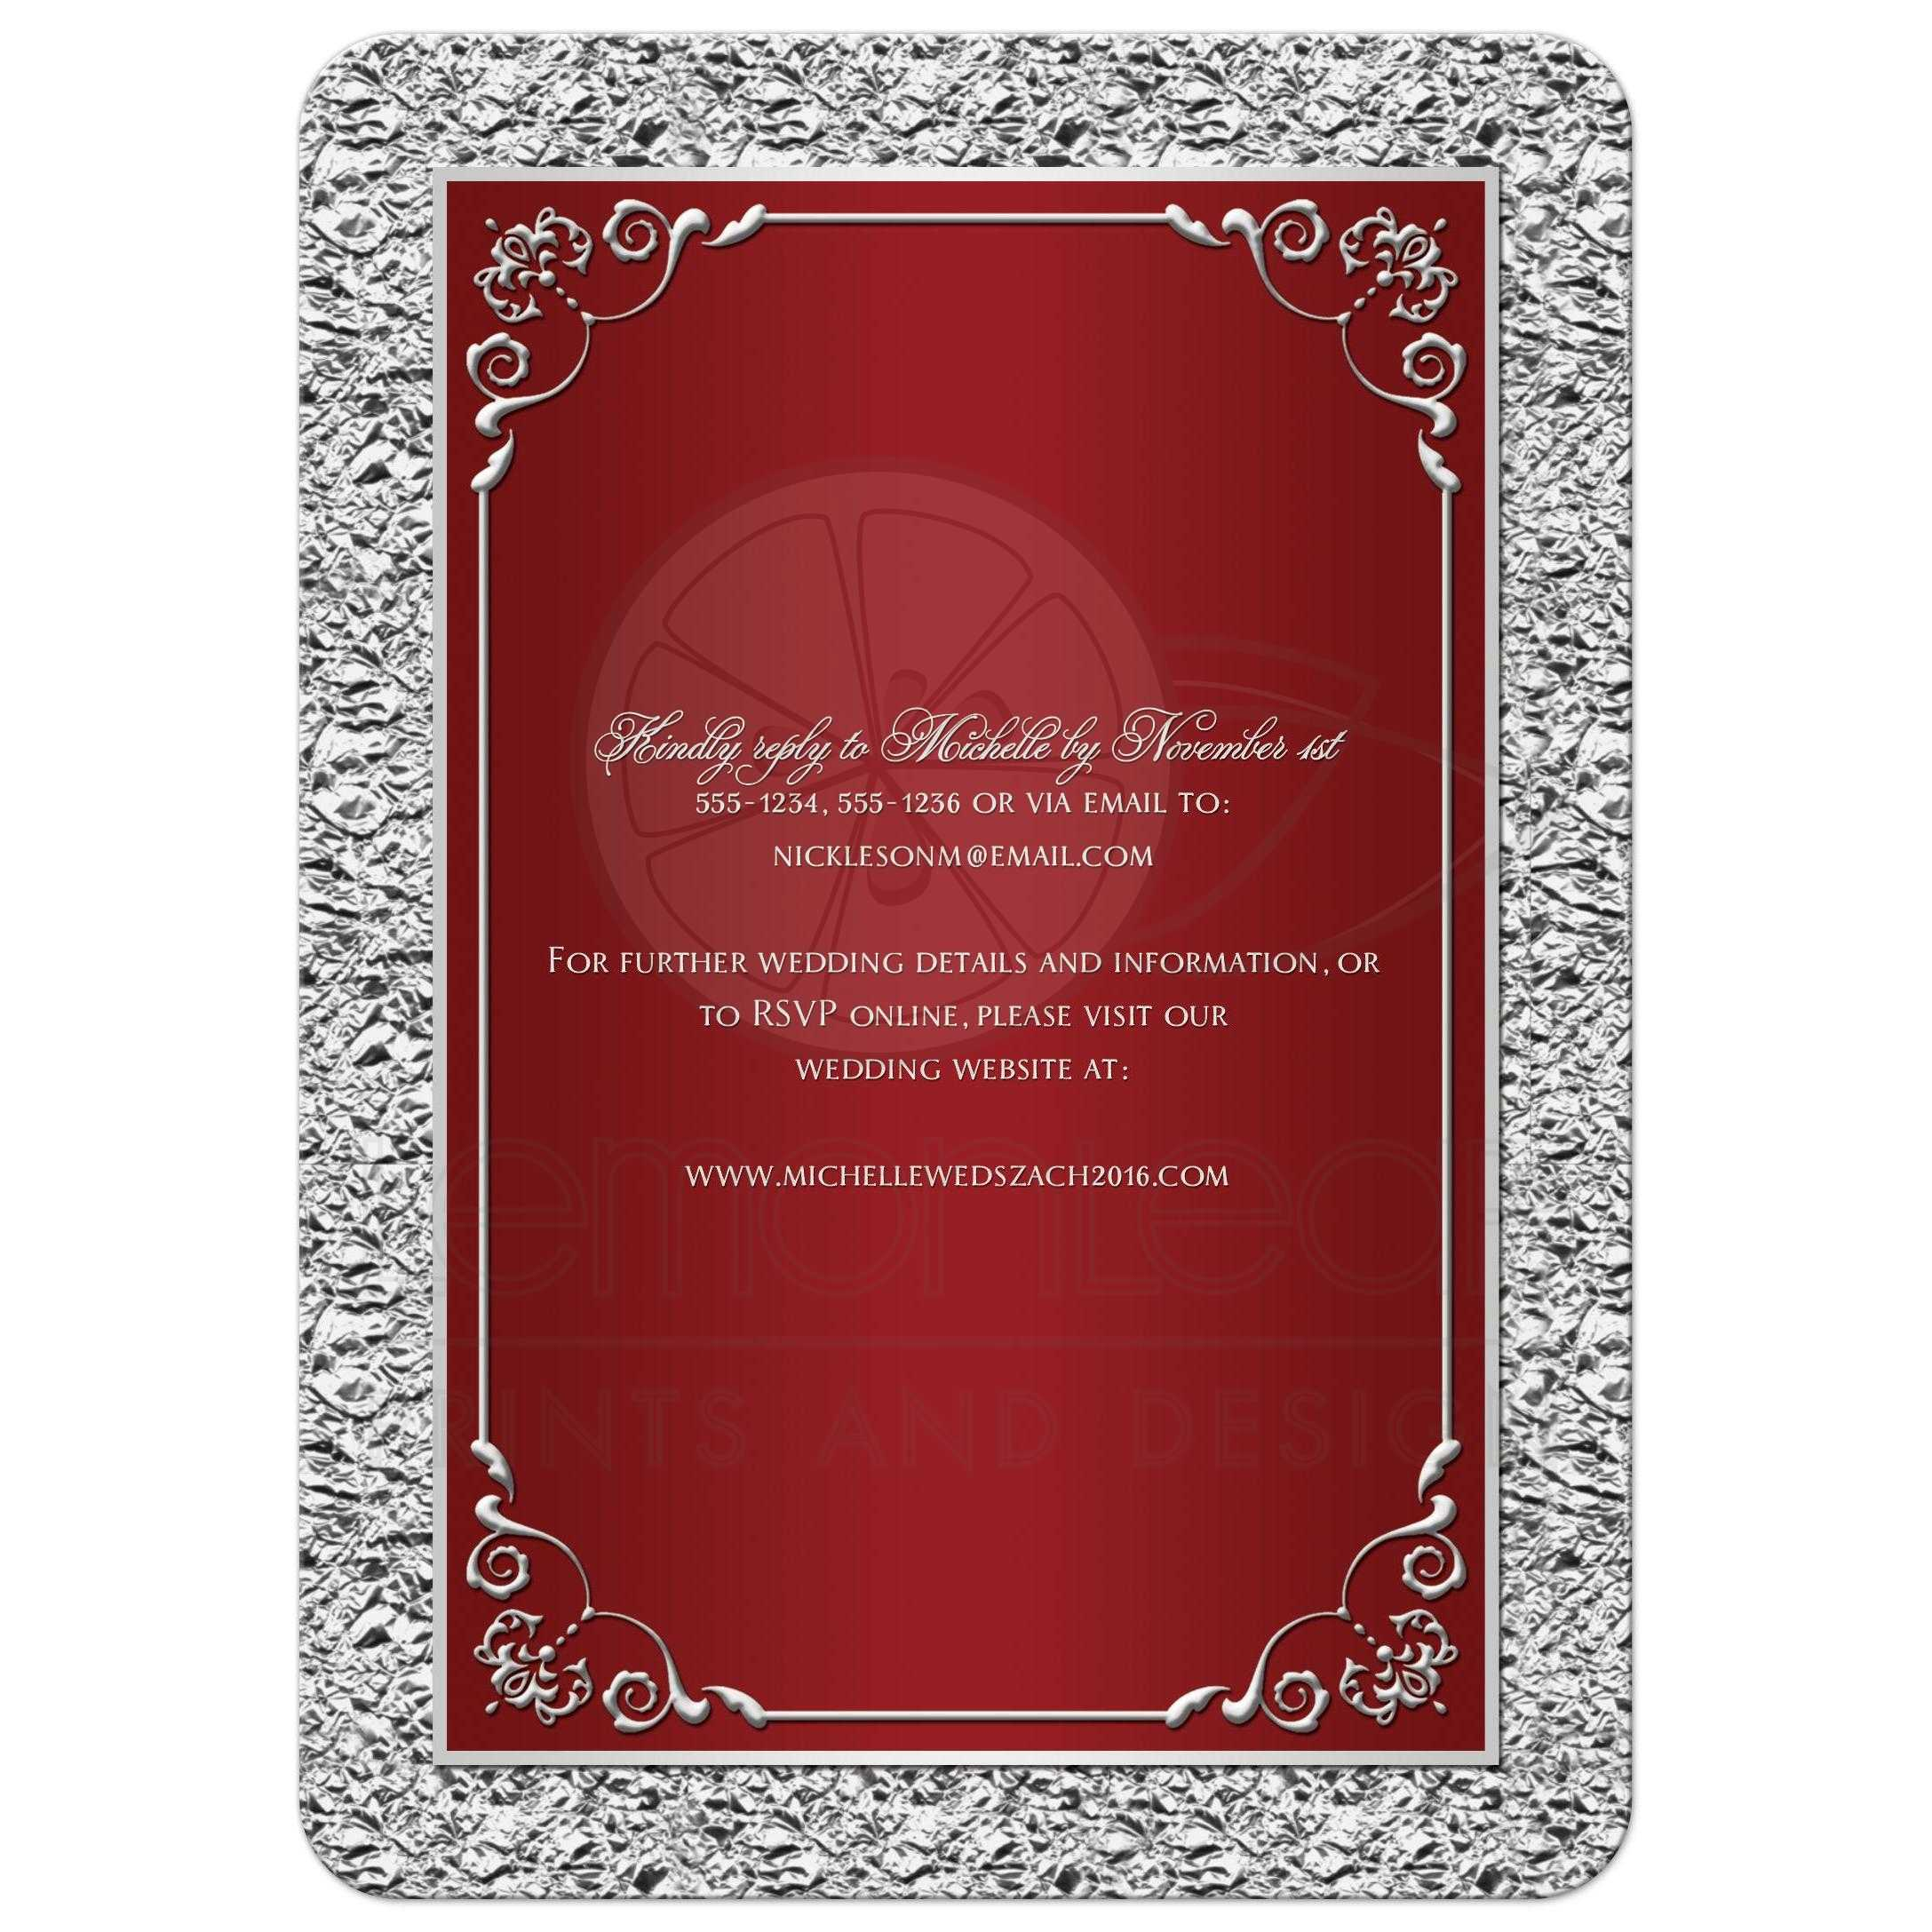 Printable Wedding Invitations Designs With Red And Silver: Red, Silver Scrolls